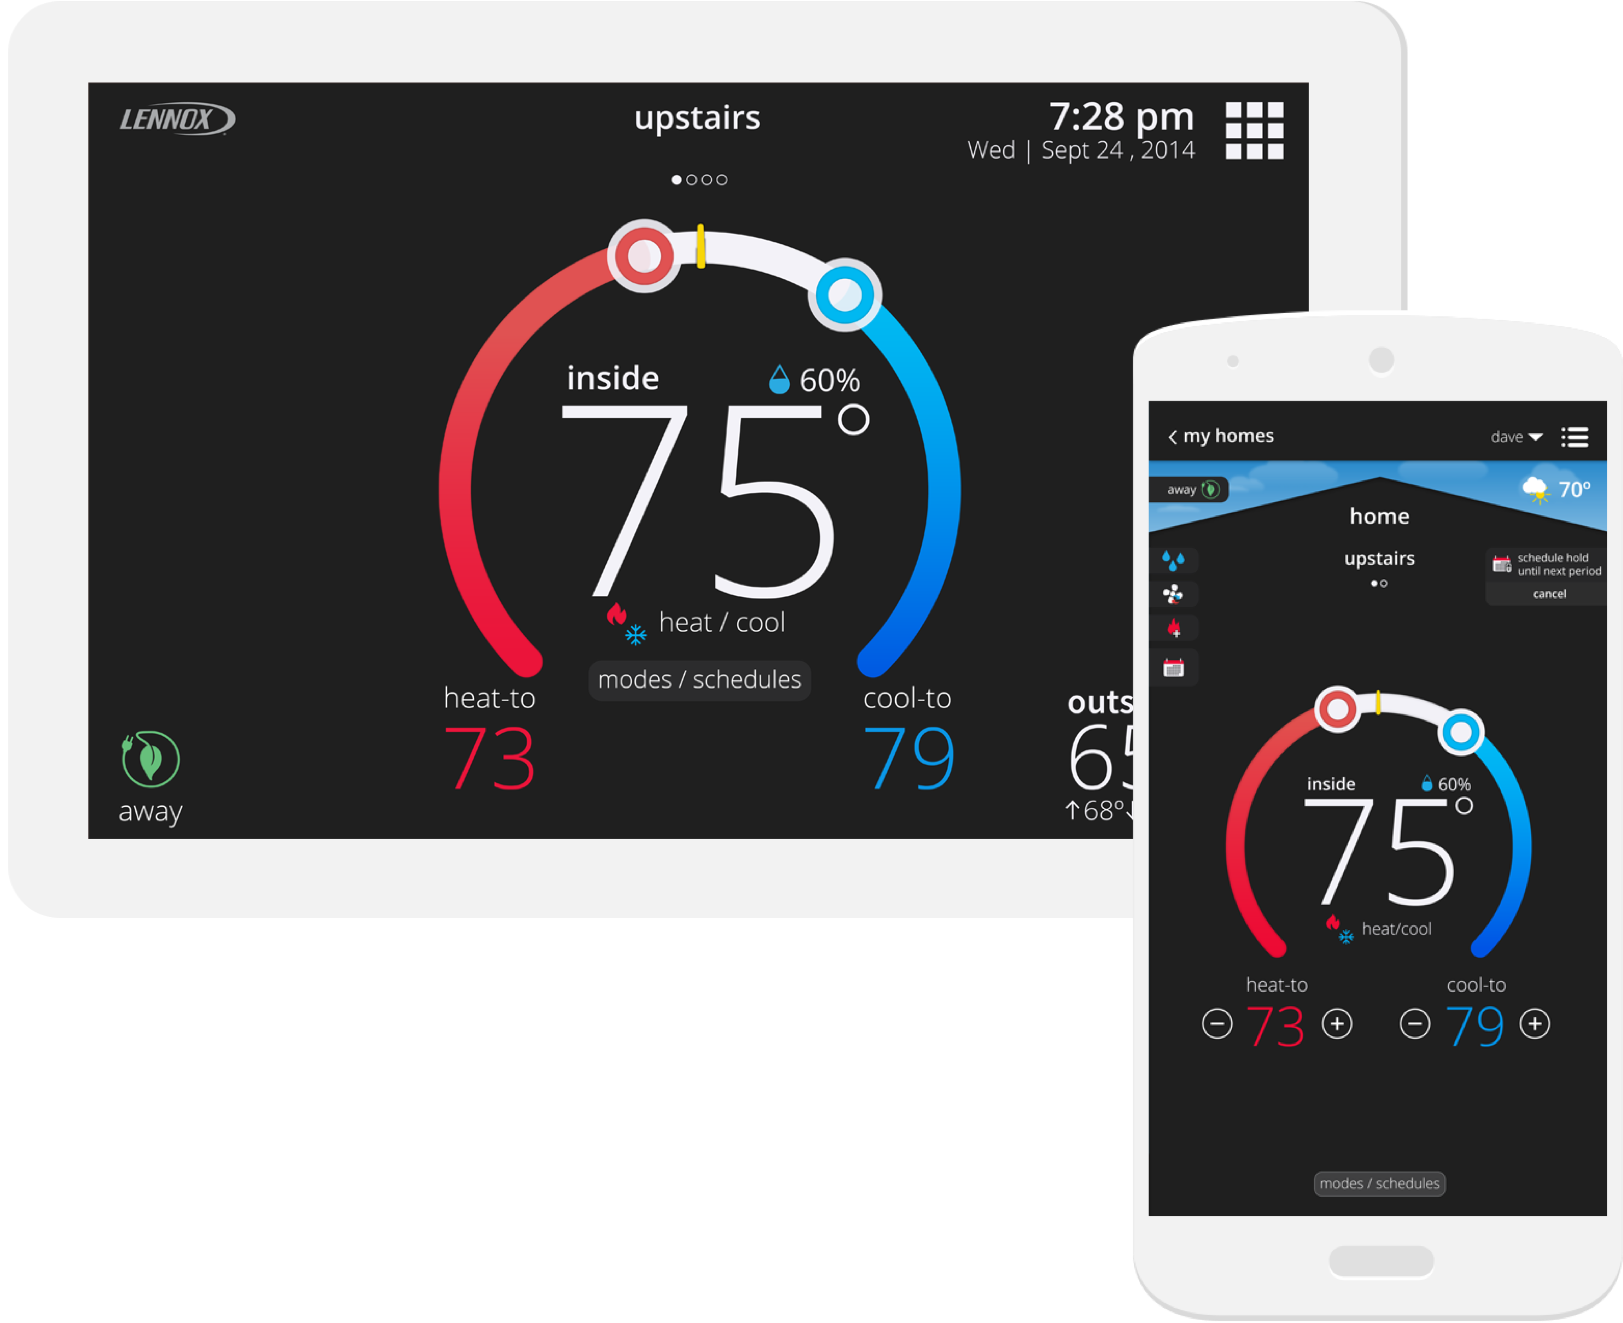 Lennox iComfort S30 Thermostat on Android and iOS